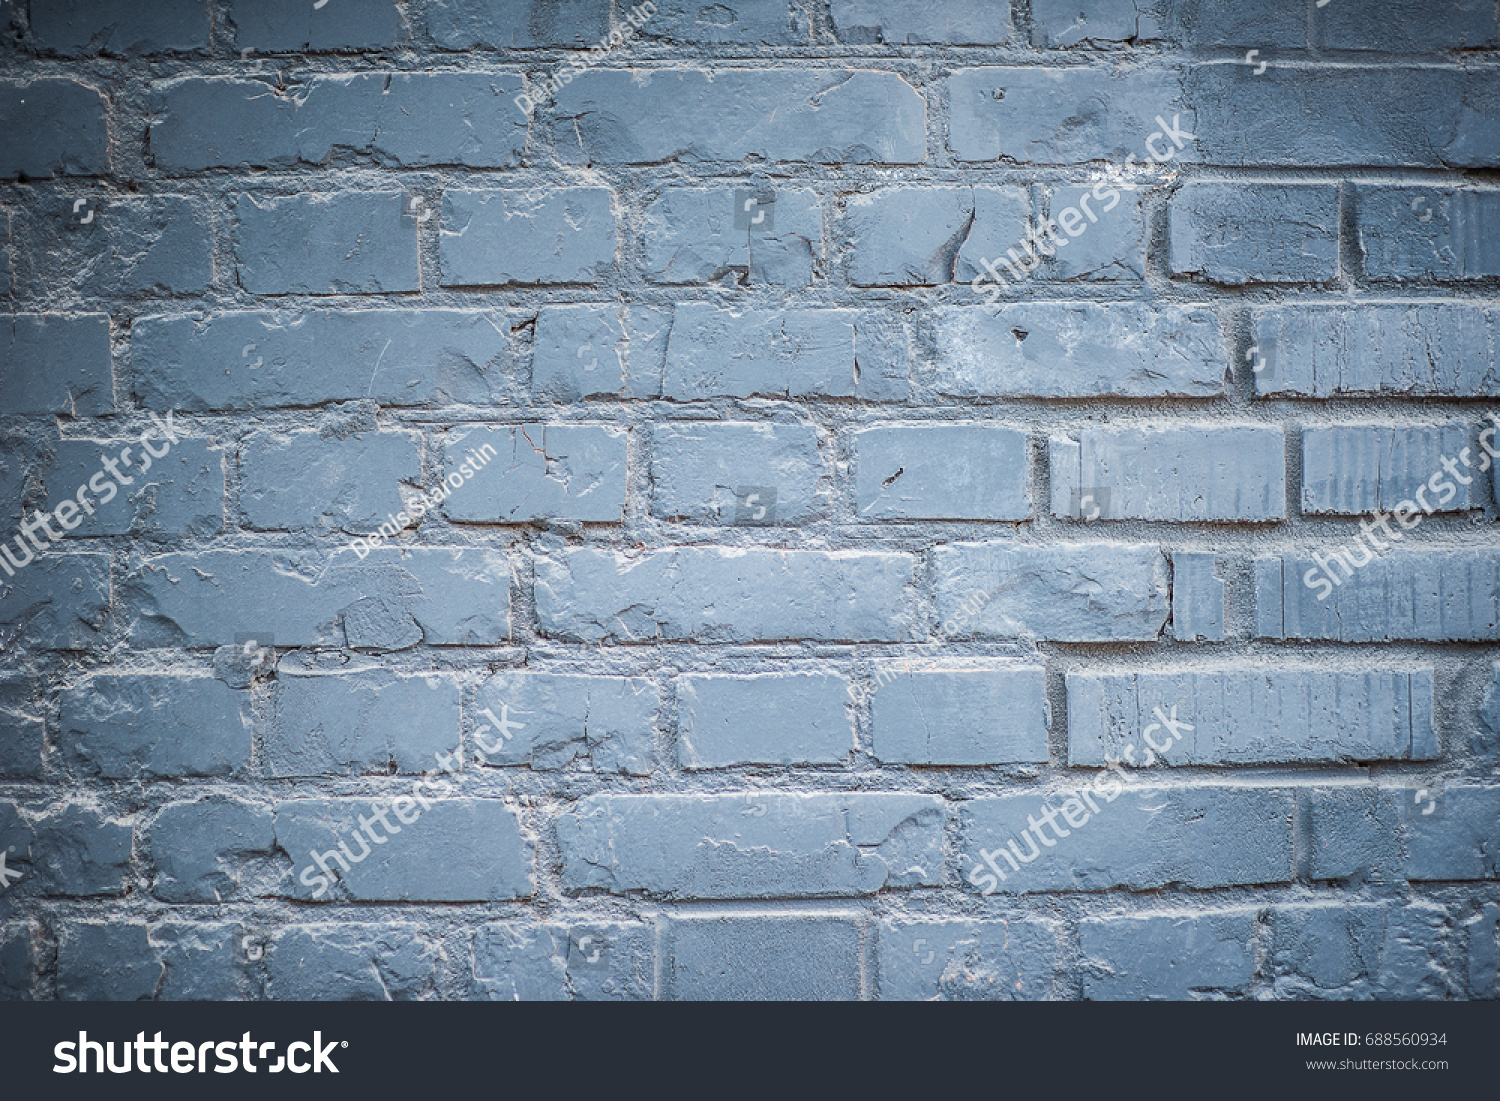 Stone Paving Texture Abstract Structured Background Stock Photo ...